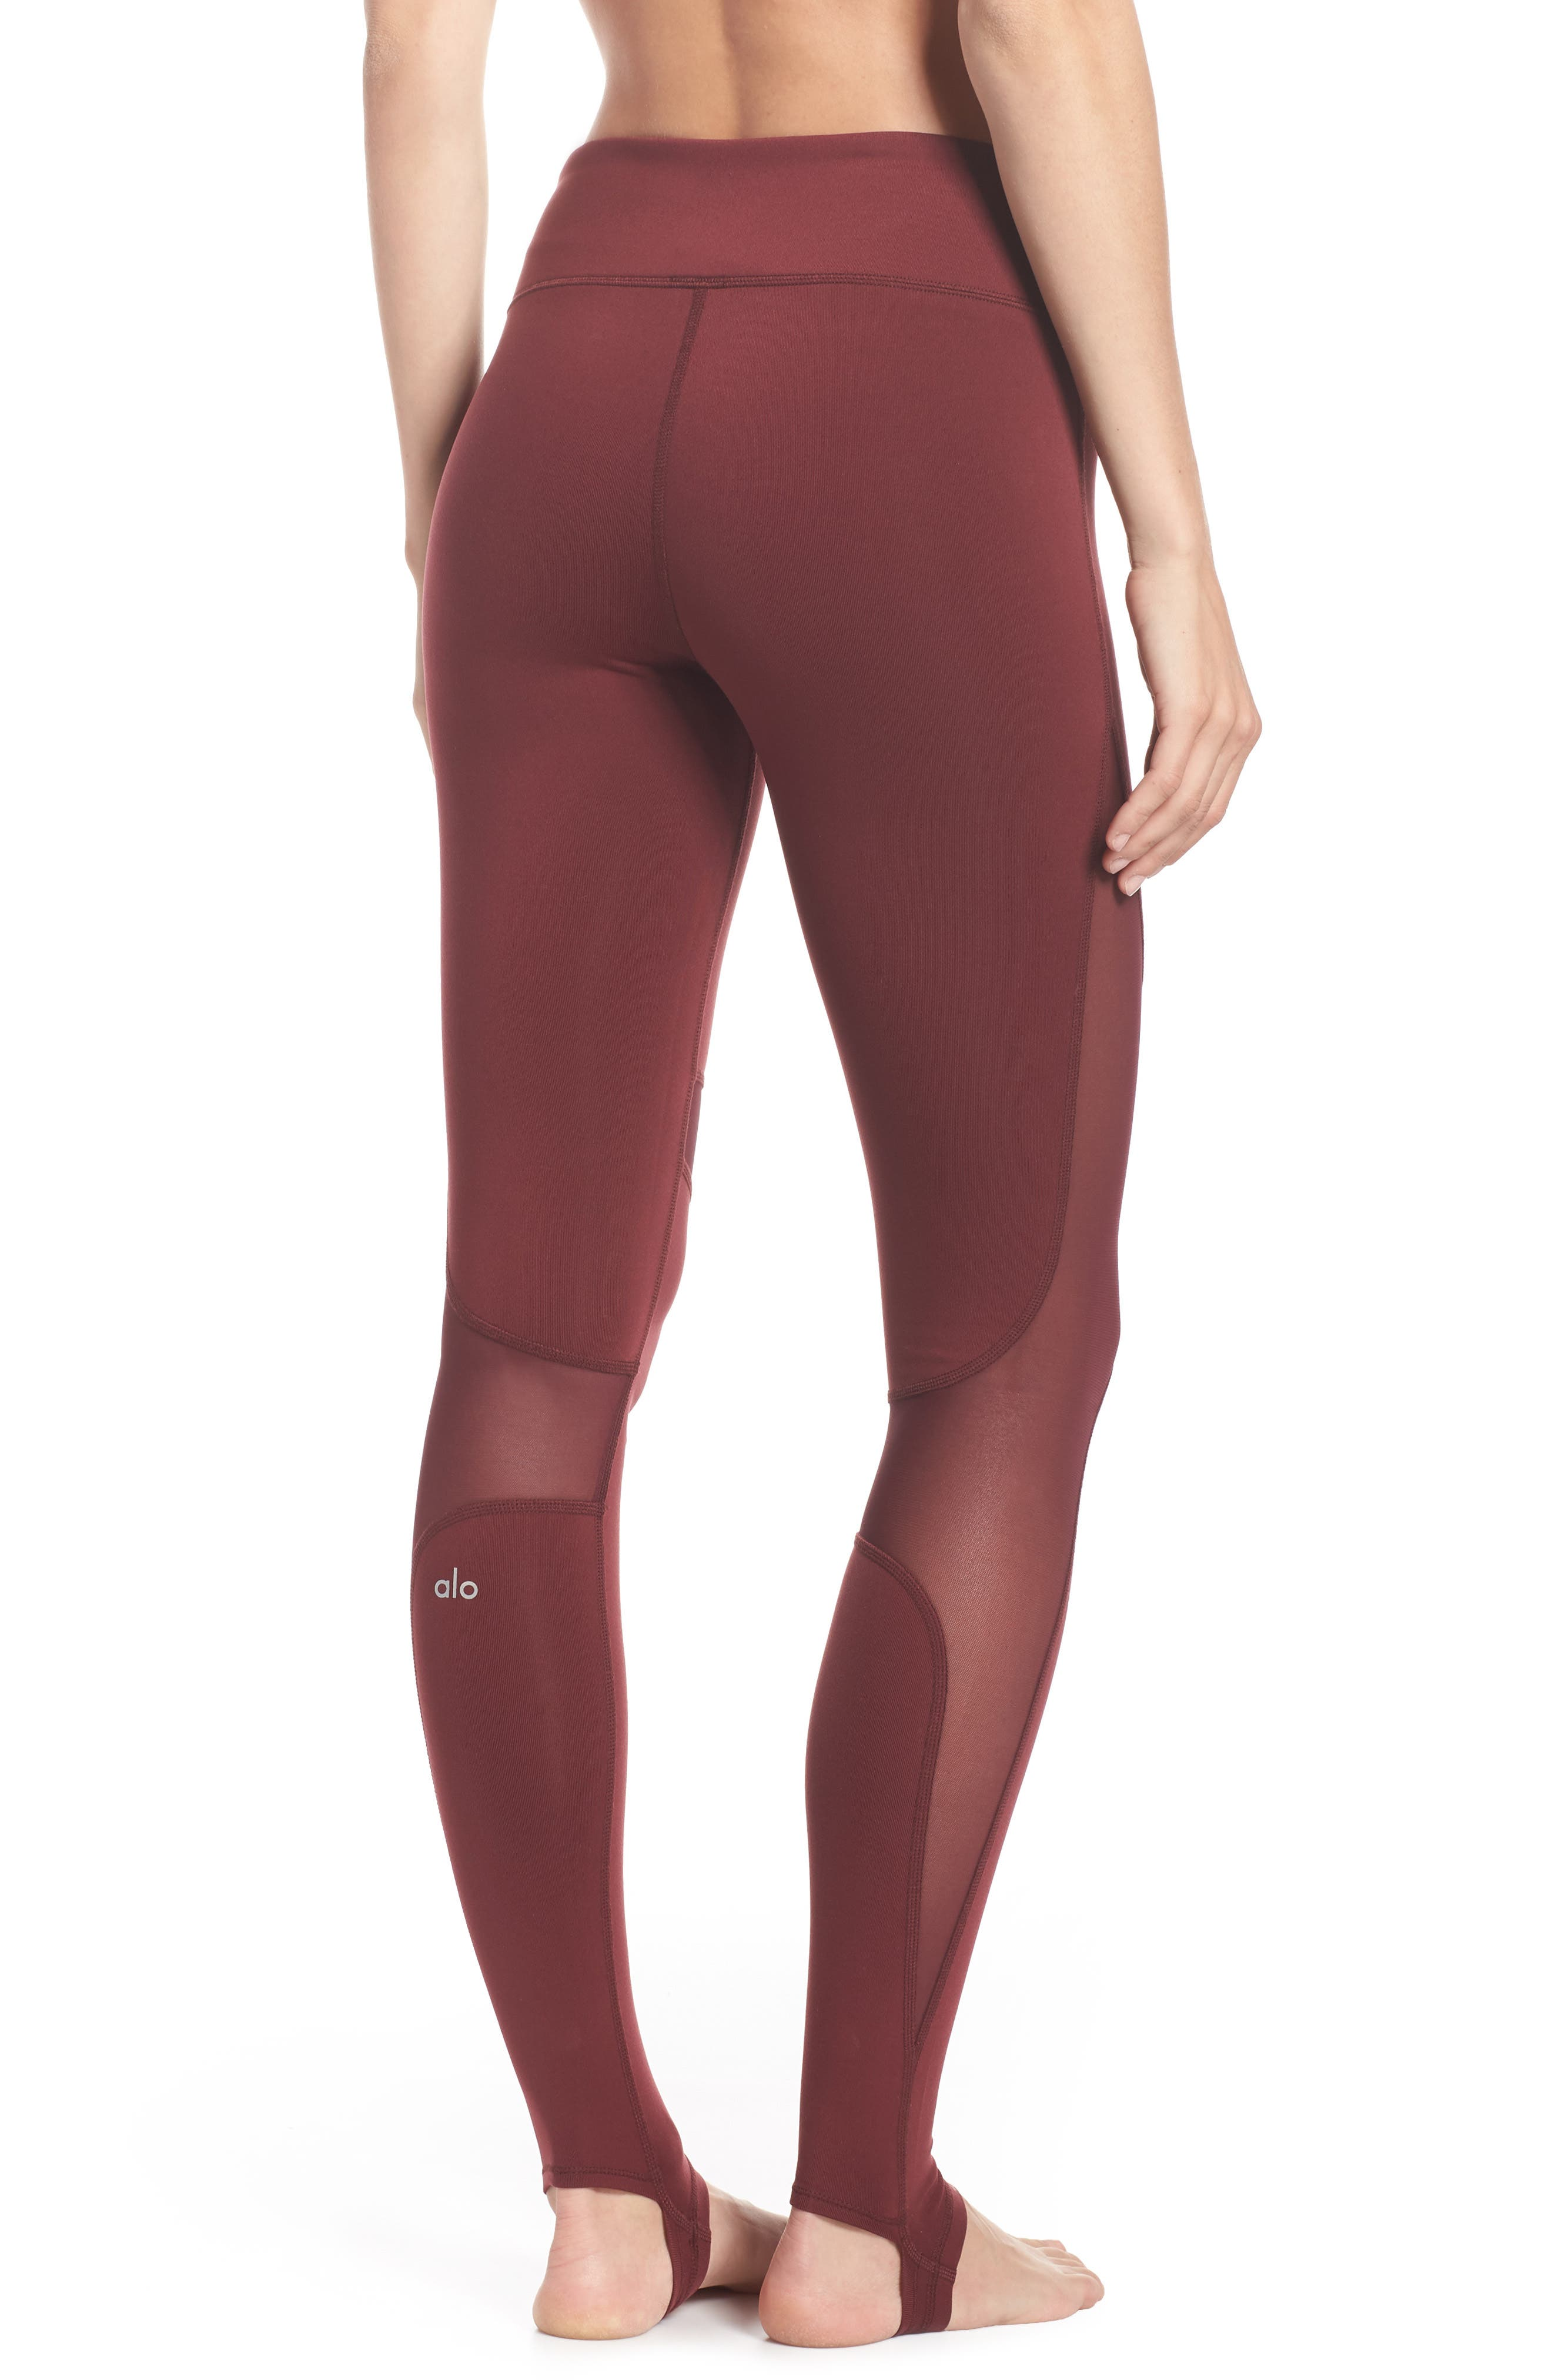 Coast High Waist Stirrup Leggings,                             Alternate thumbnail 2, color,                             936